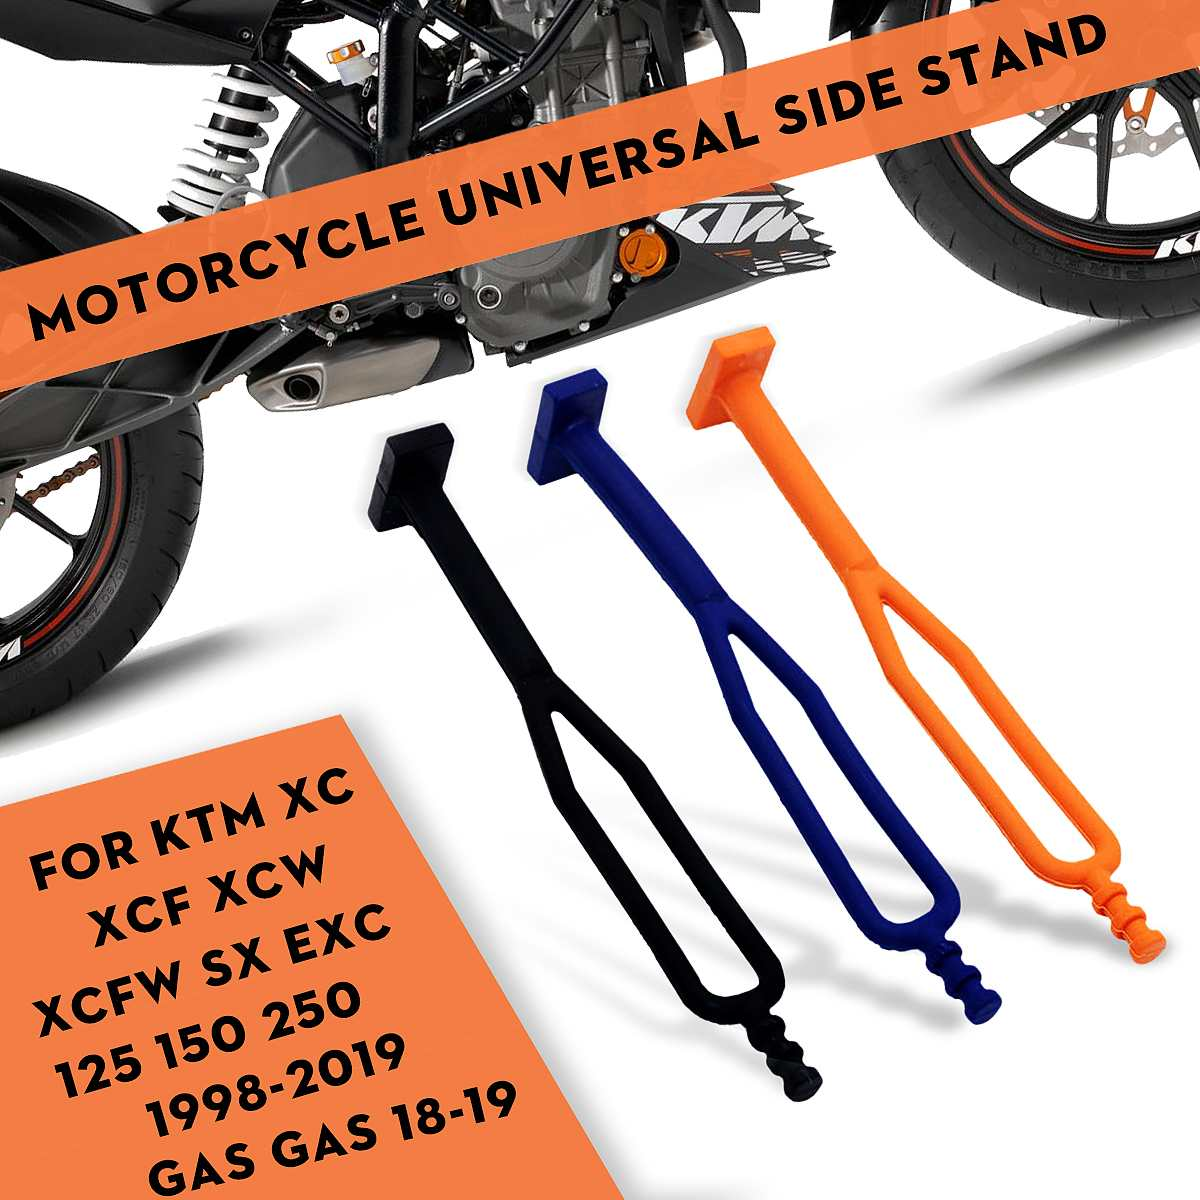 Motorcycle Parking Rack Side Kick Stand Kickstand Rubber Strap For KTM XC XCF XCW XCFW SX EXC 125 150 250 350 450 530 For GAS